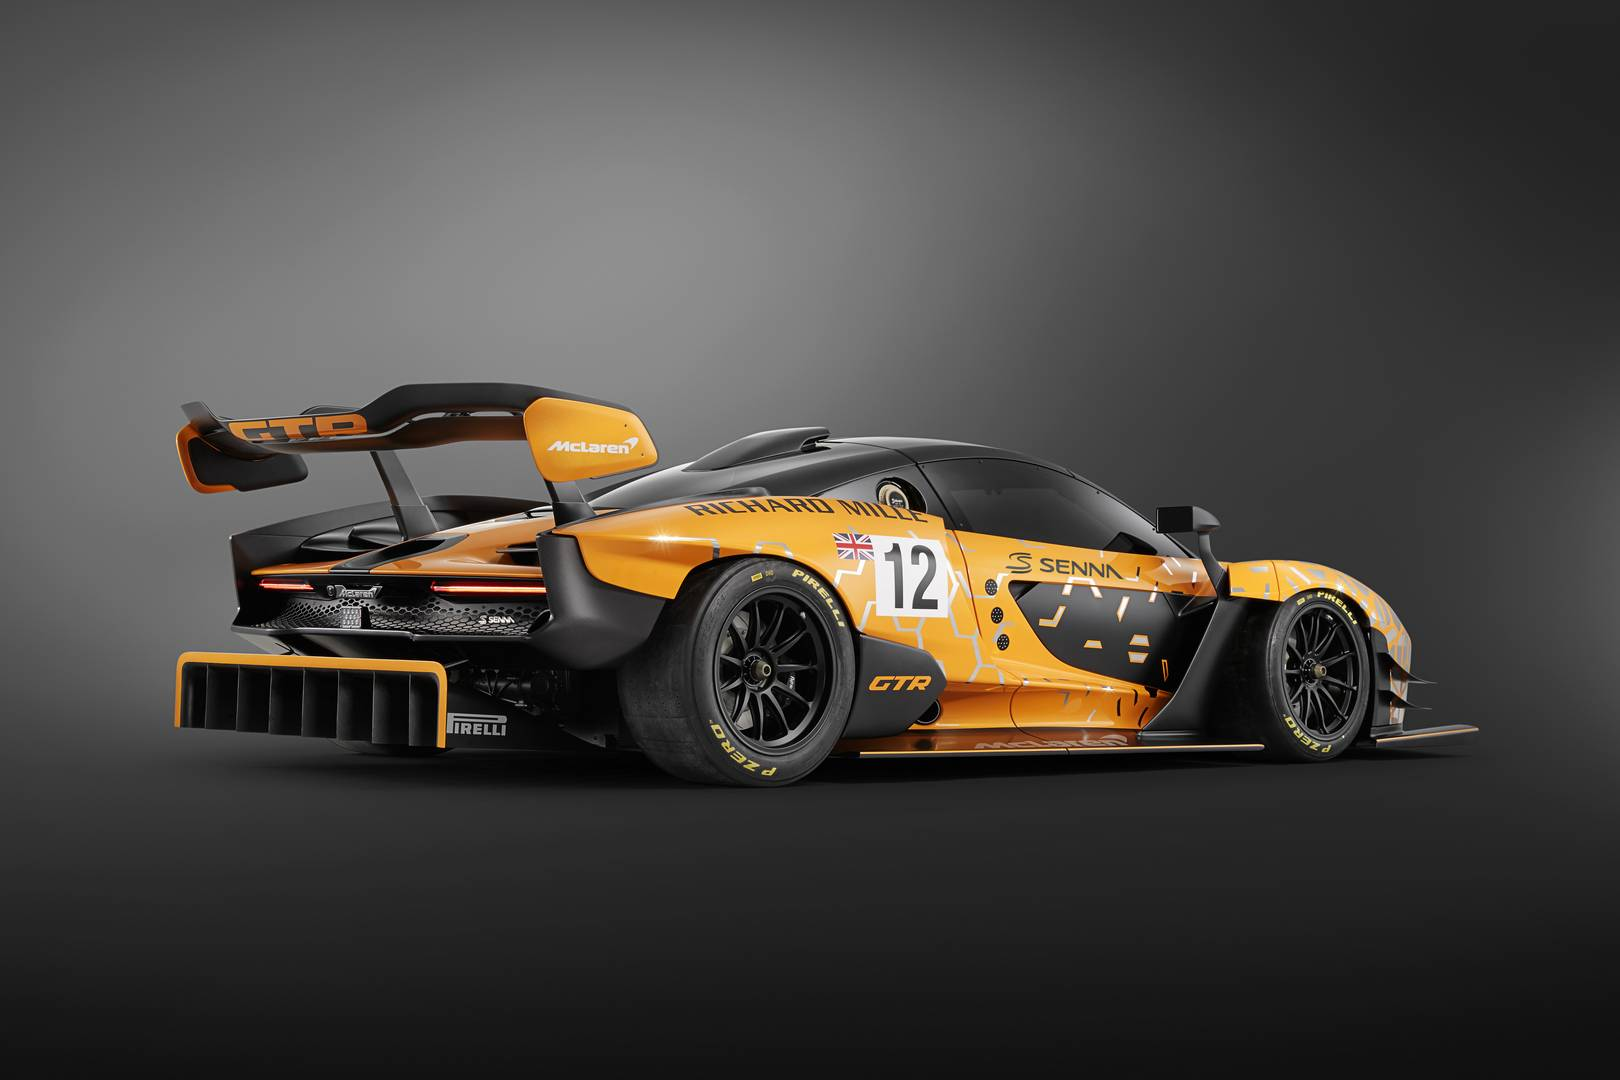 McLaren Senna GTR Customer Racecar Debuts as Quickest McLaren Outside F1